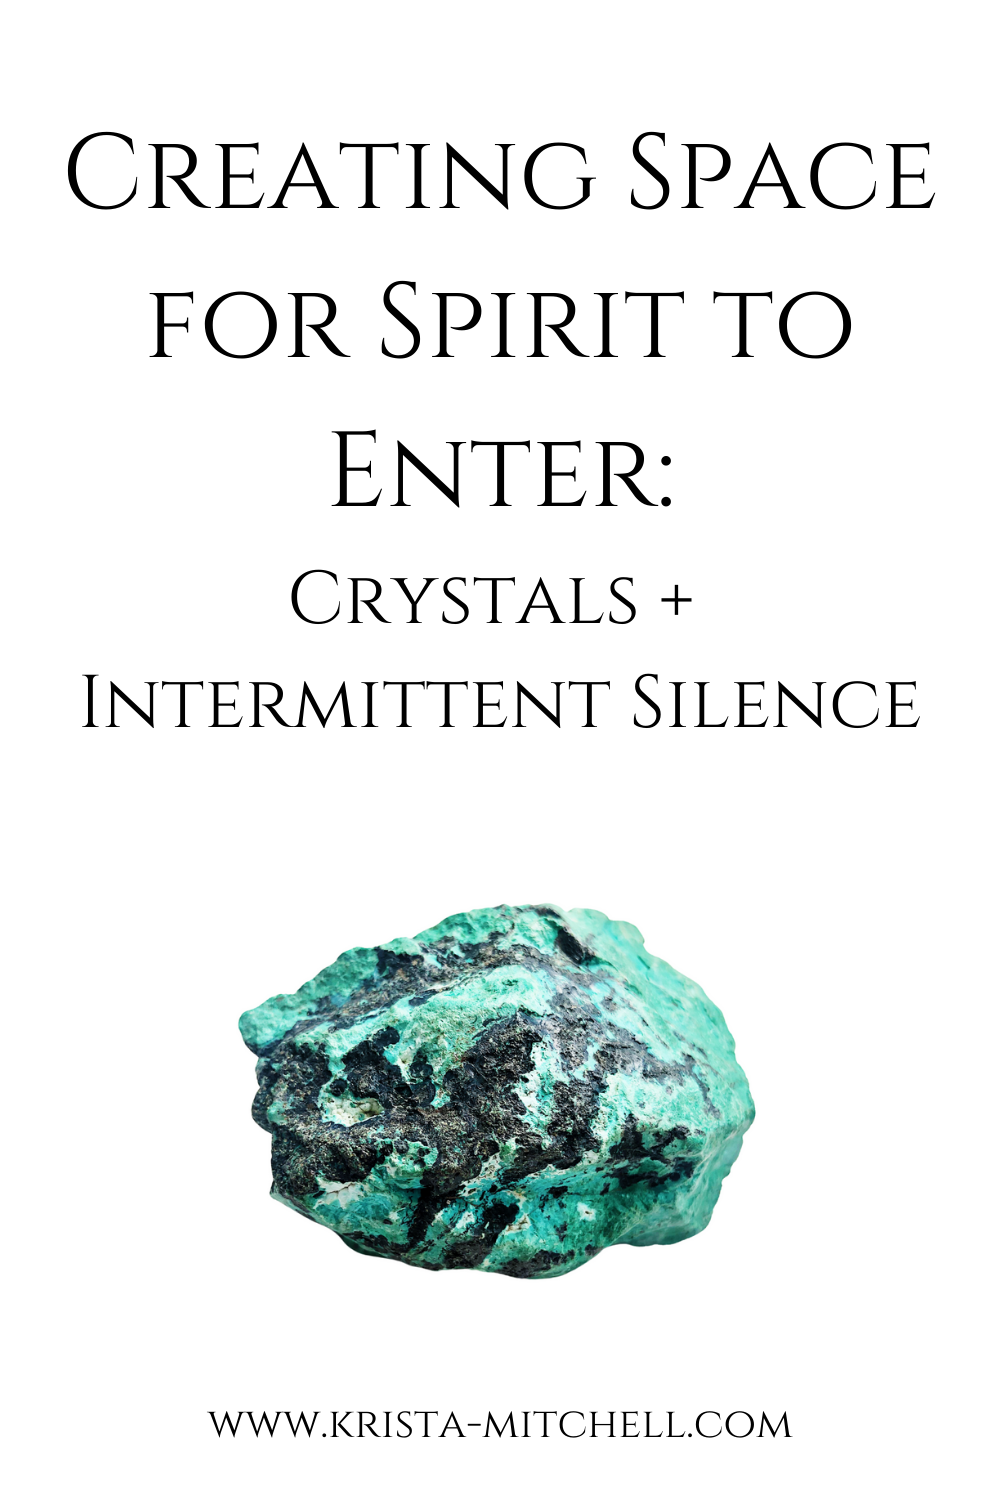 Creating Space for Spirit to Enter by Krista Mitchell / www.krista-mitchell.com